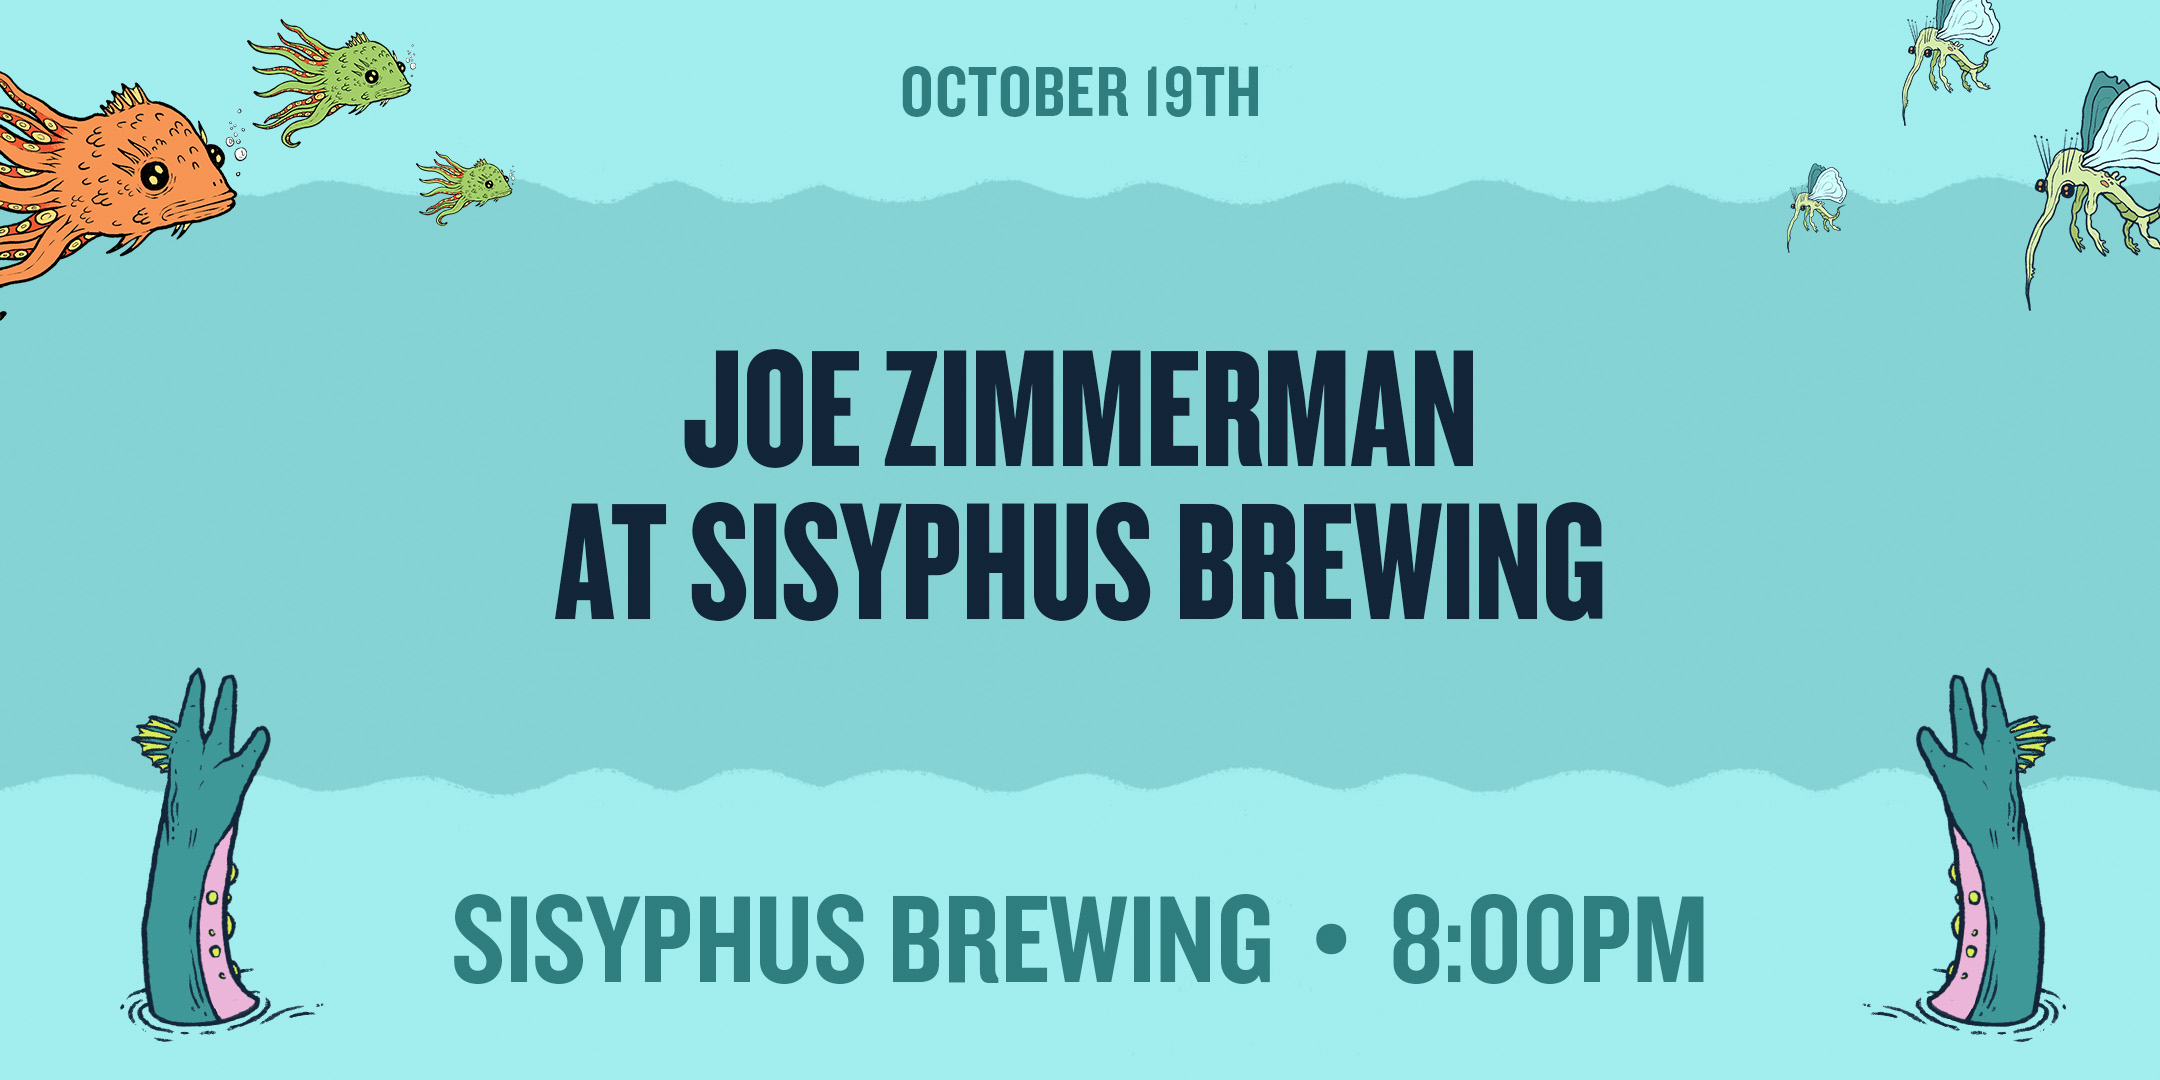 OCT19-Joe Zimmerman at Sisyphus.jpg